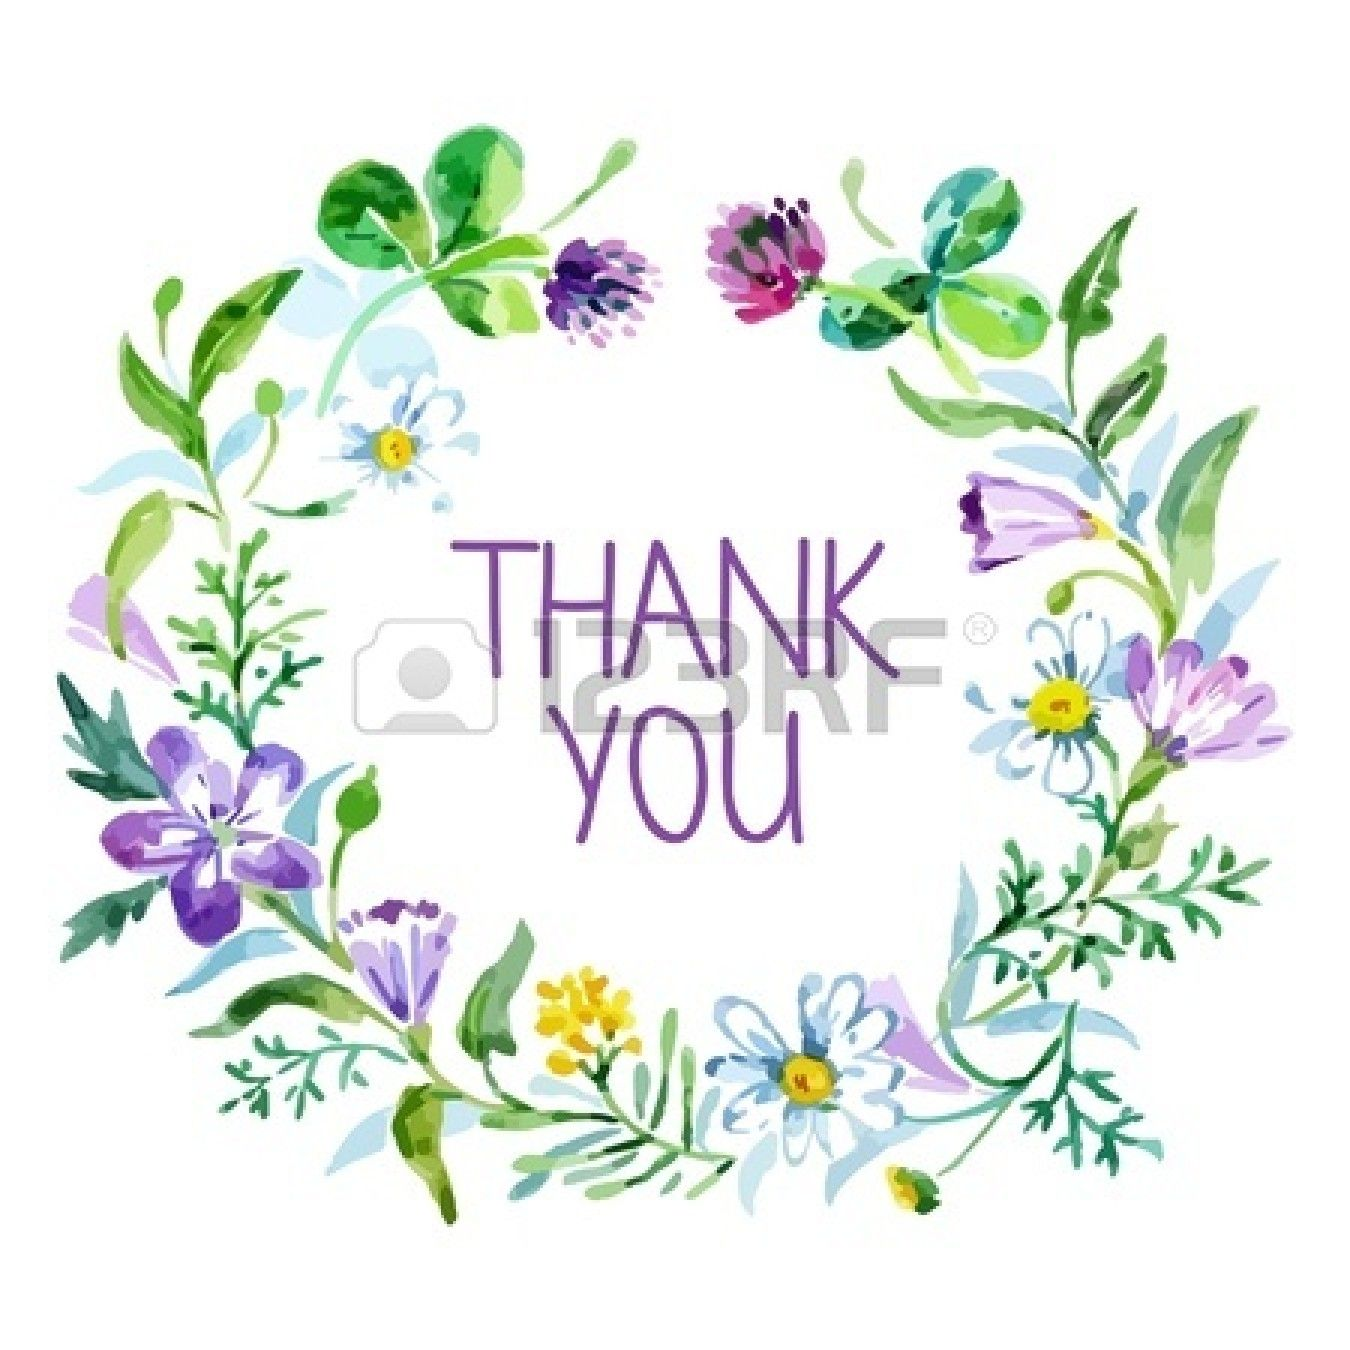 Thank You Card With Watercolor Floral Bouquet Vector Illustration Thank You Wallpaper Thank You Pictures Thank You Cards